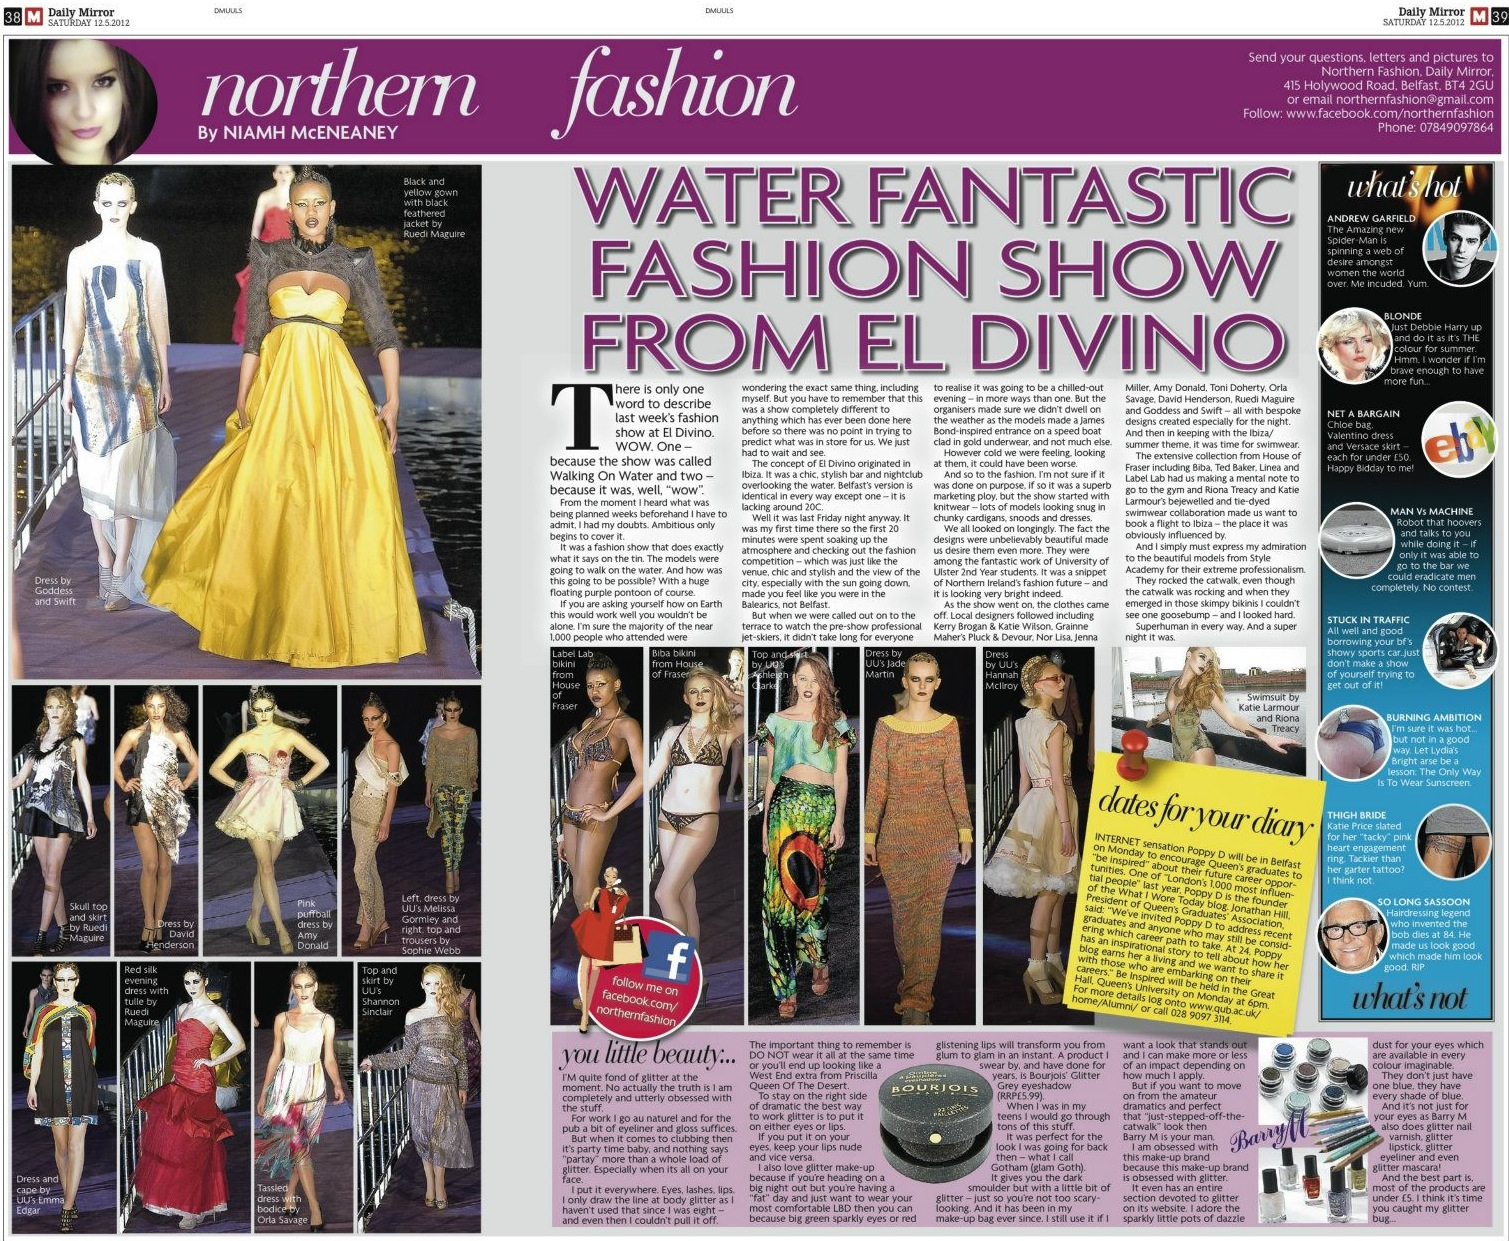 Daily Mirror, Northern Fashion, Walk on Water with El Divino